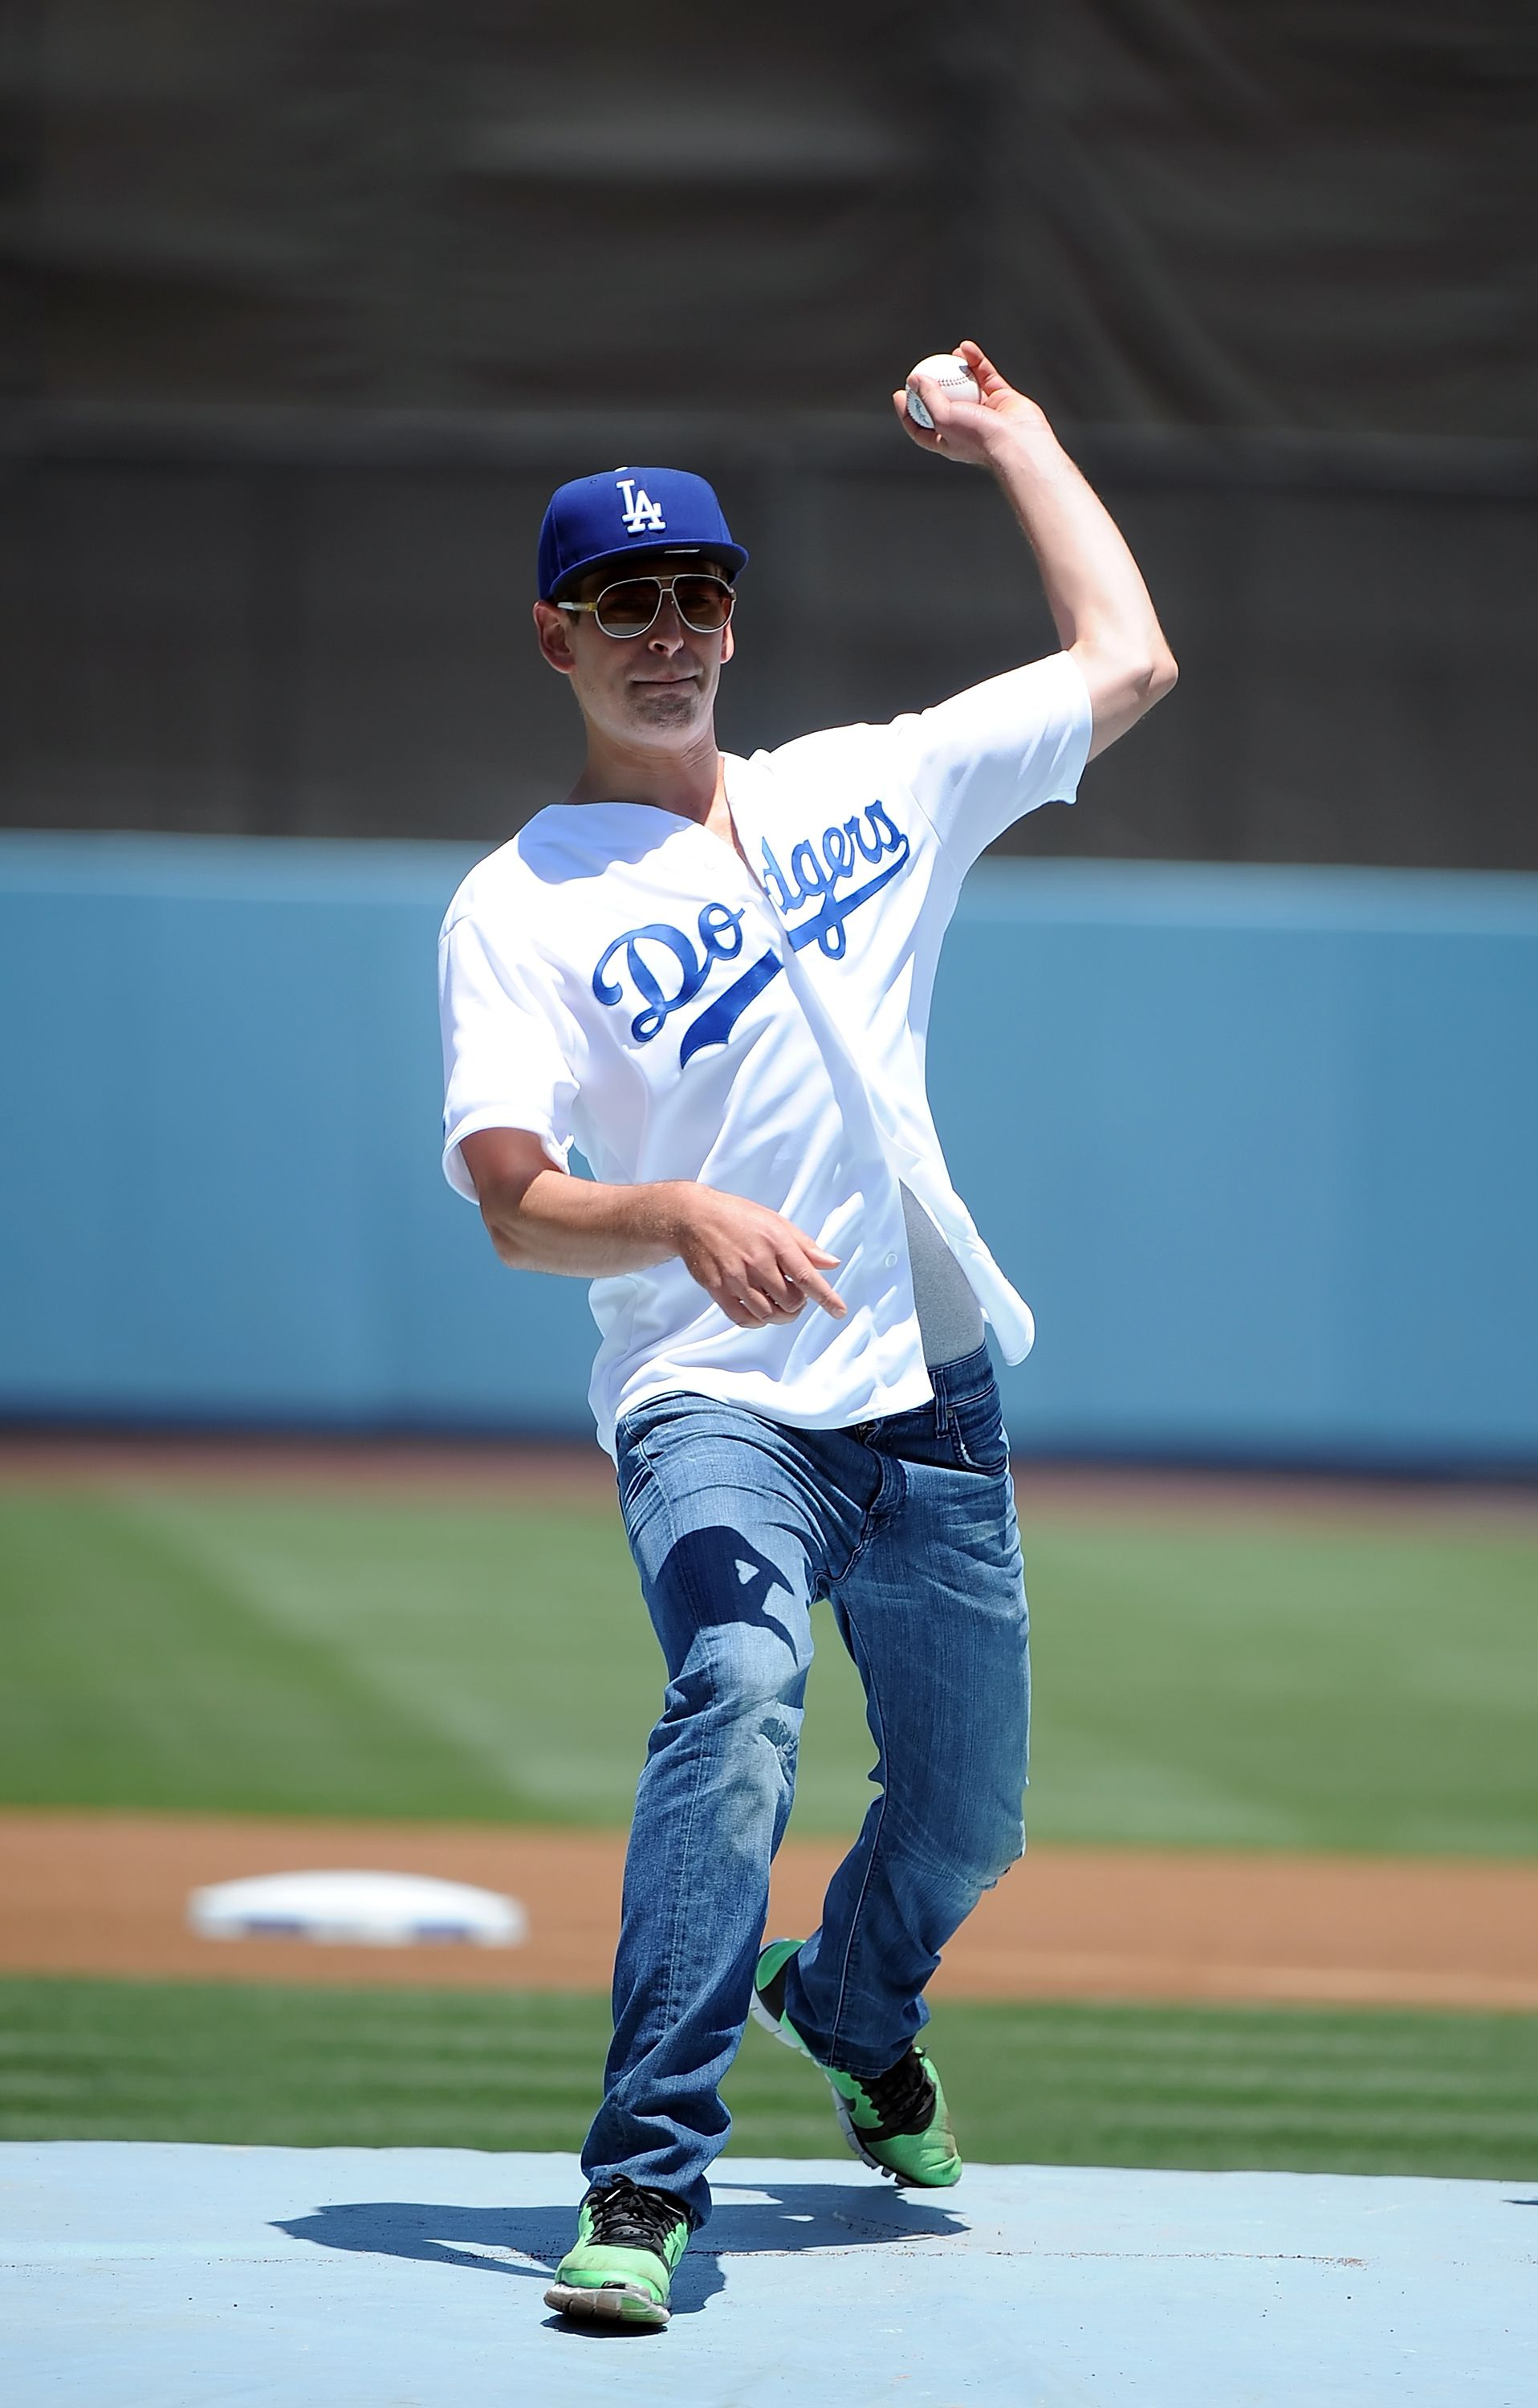 Matisyahu throws out the first pitch before game between the San Diego Padres and the Los Angeles Dodgers on July 15